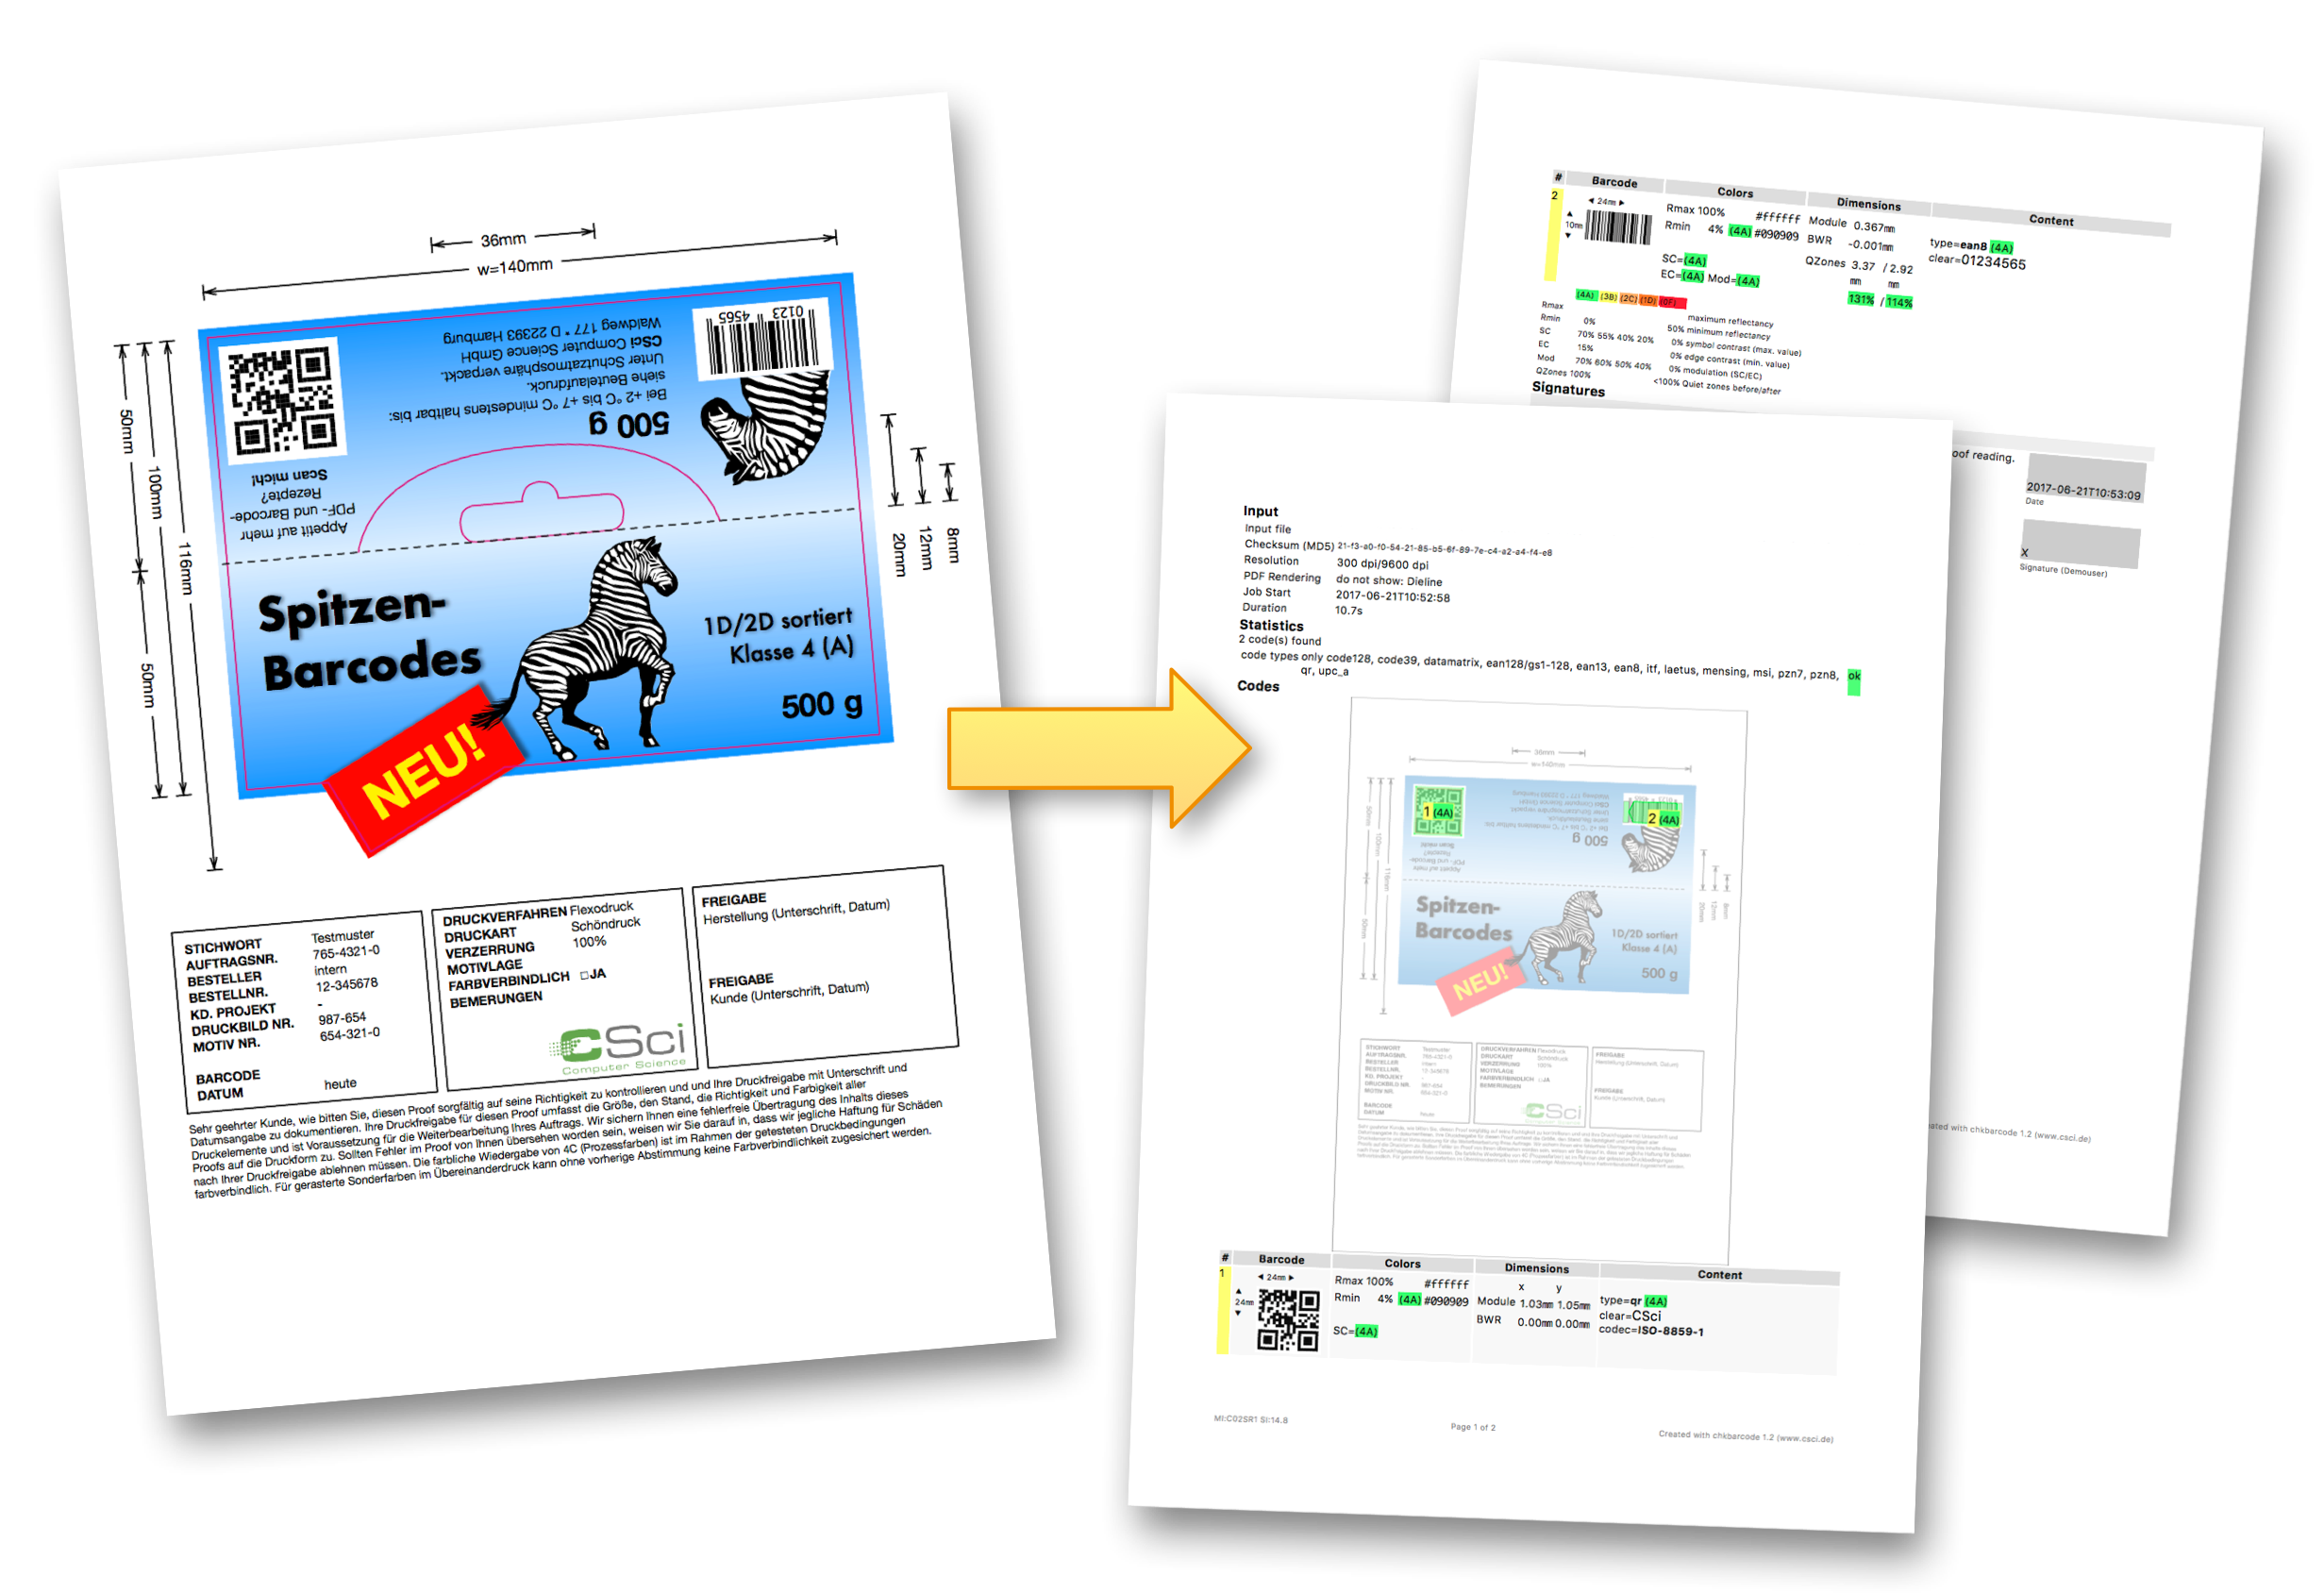 Barcode Verification barcode check in pdf files with chkbarcode from csci | pdf